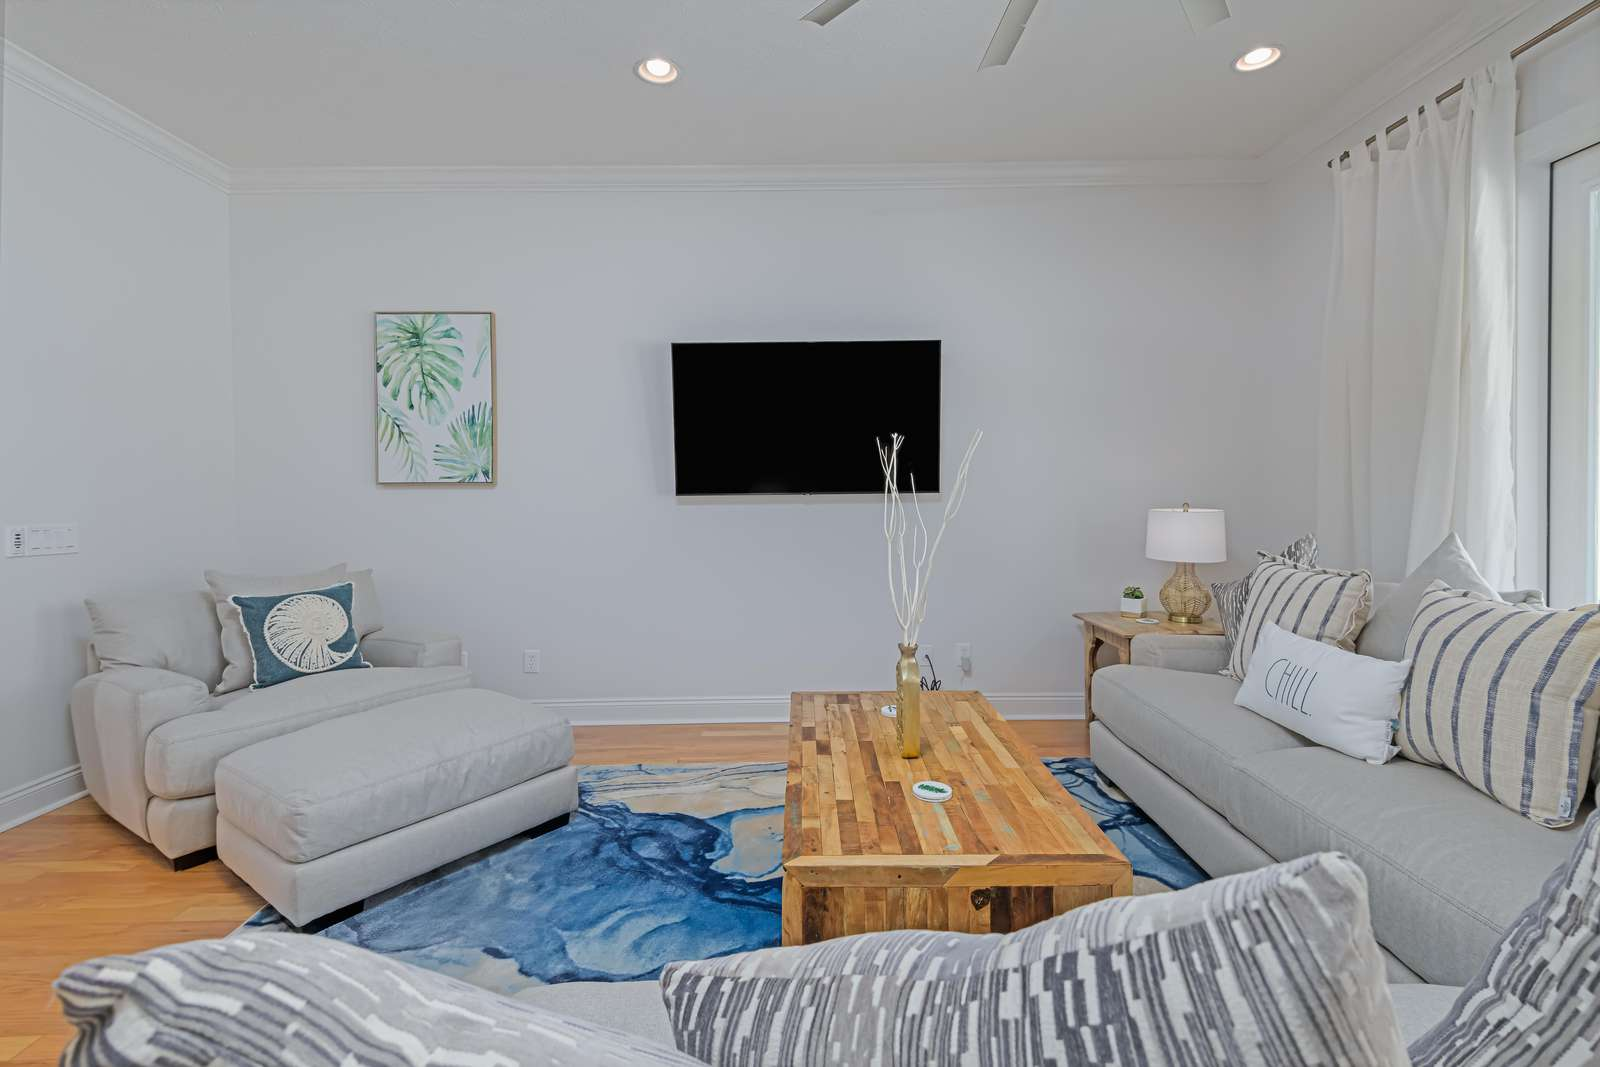 Open layout meant for relaxing with those you love!